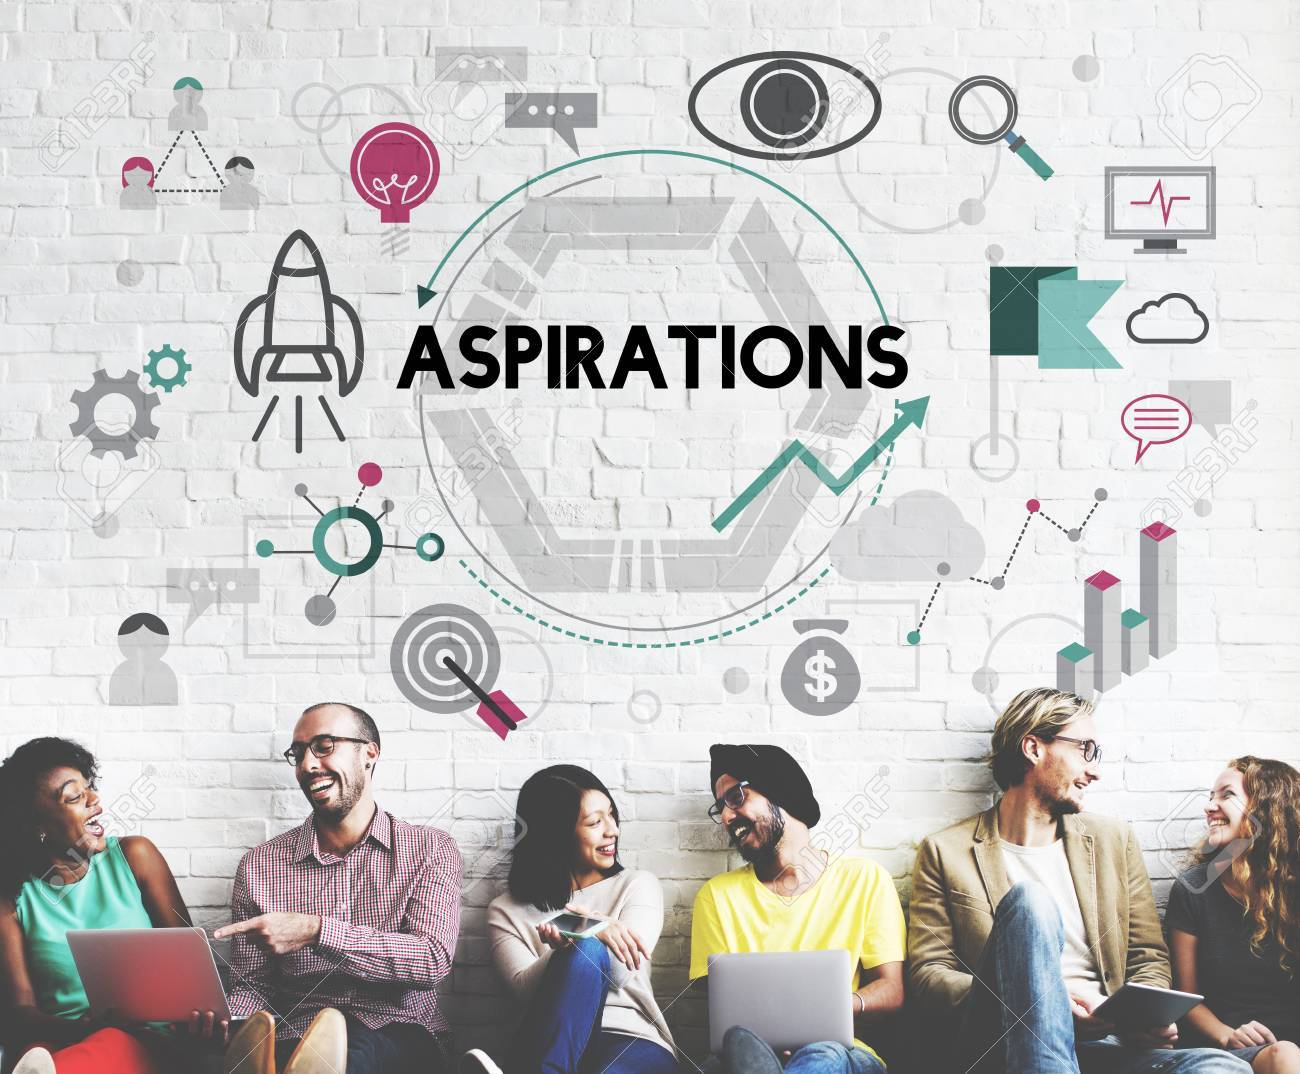 aspirations ambition desire goals target expectation concept stock aspirations ambition desire goals target expectation concept stock photo 55780784